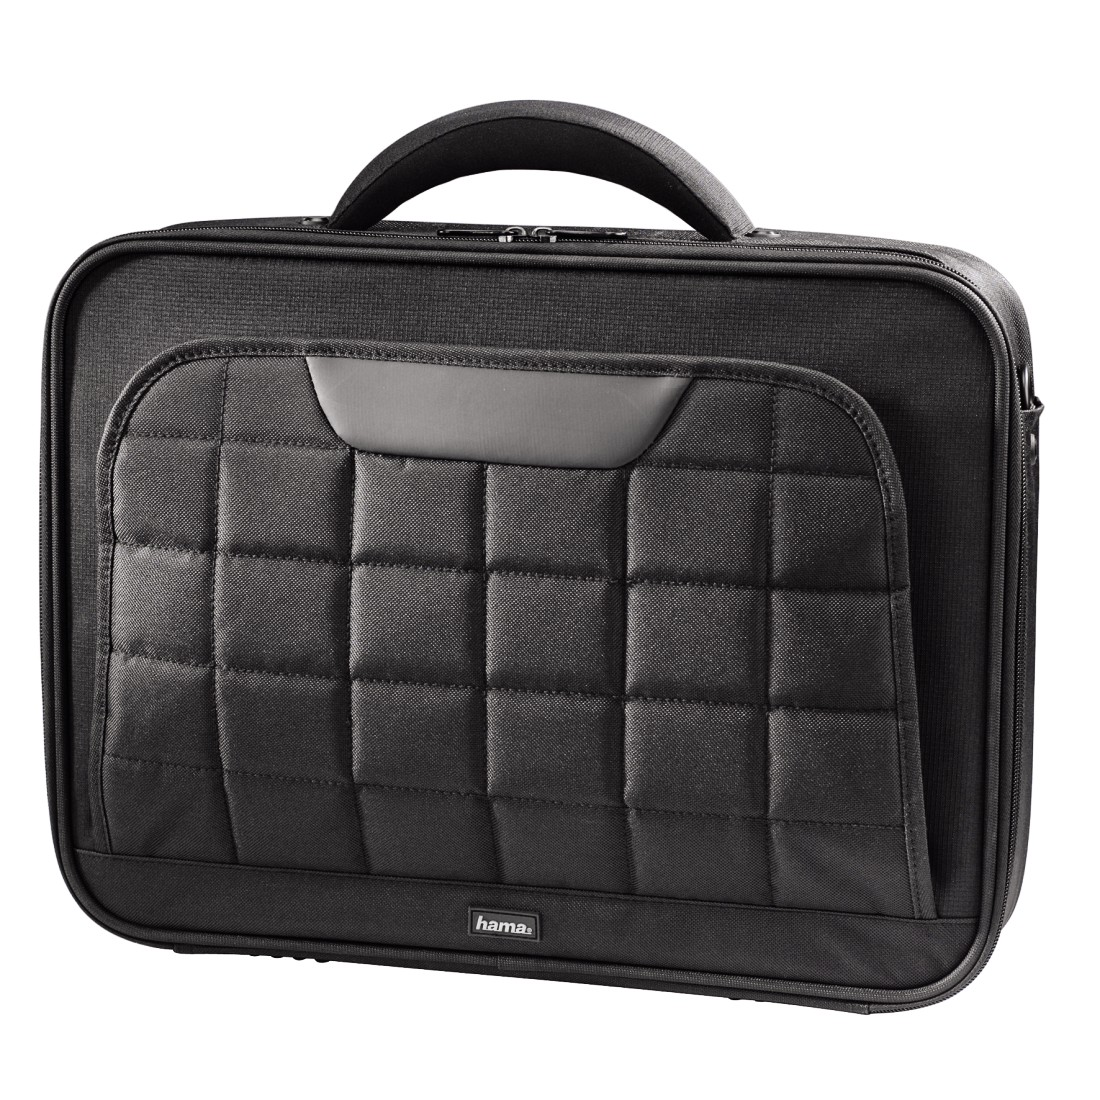 abx High-Res Image - Hama, Sportsline III Notebook Bag, display sizes up to 31 cm (12.1)